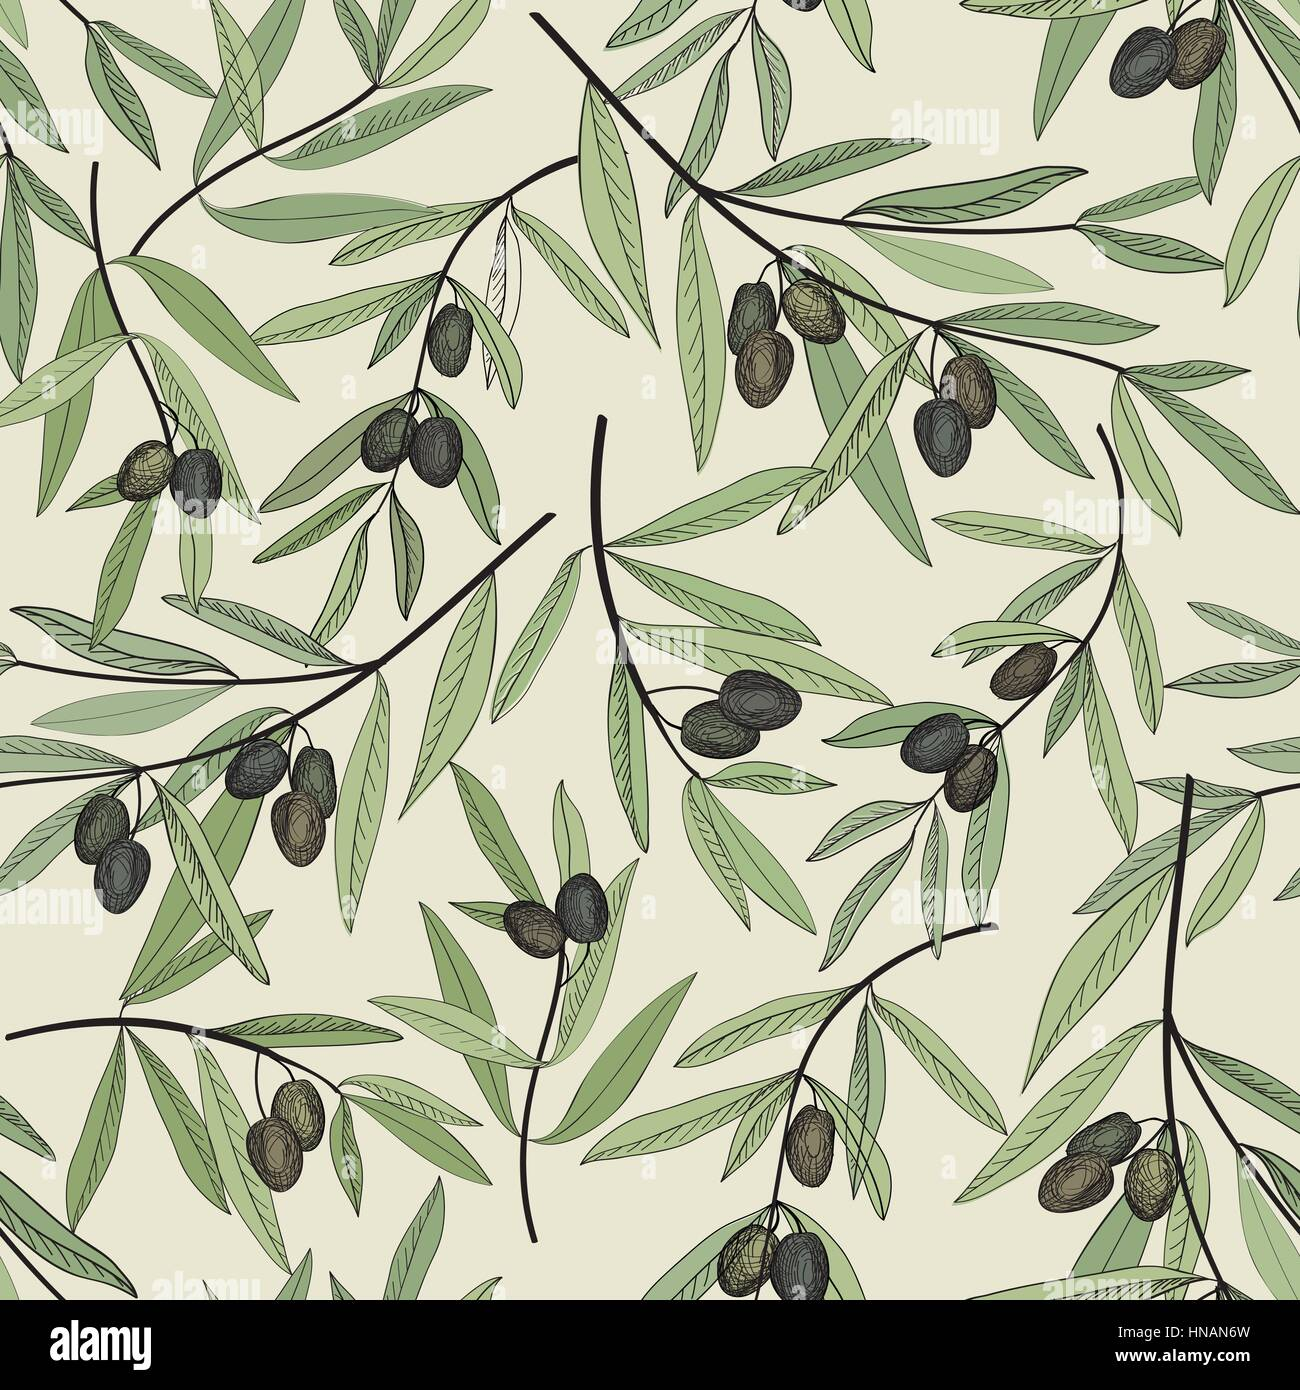 Olive Branch Crown Stock Photos & Olive Branch Crown Stock Images ...